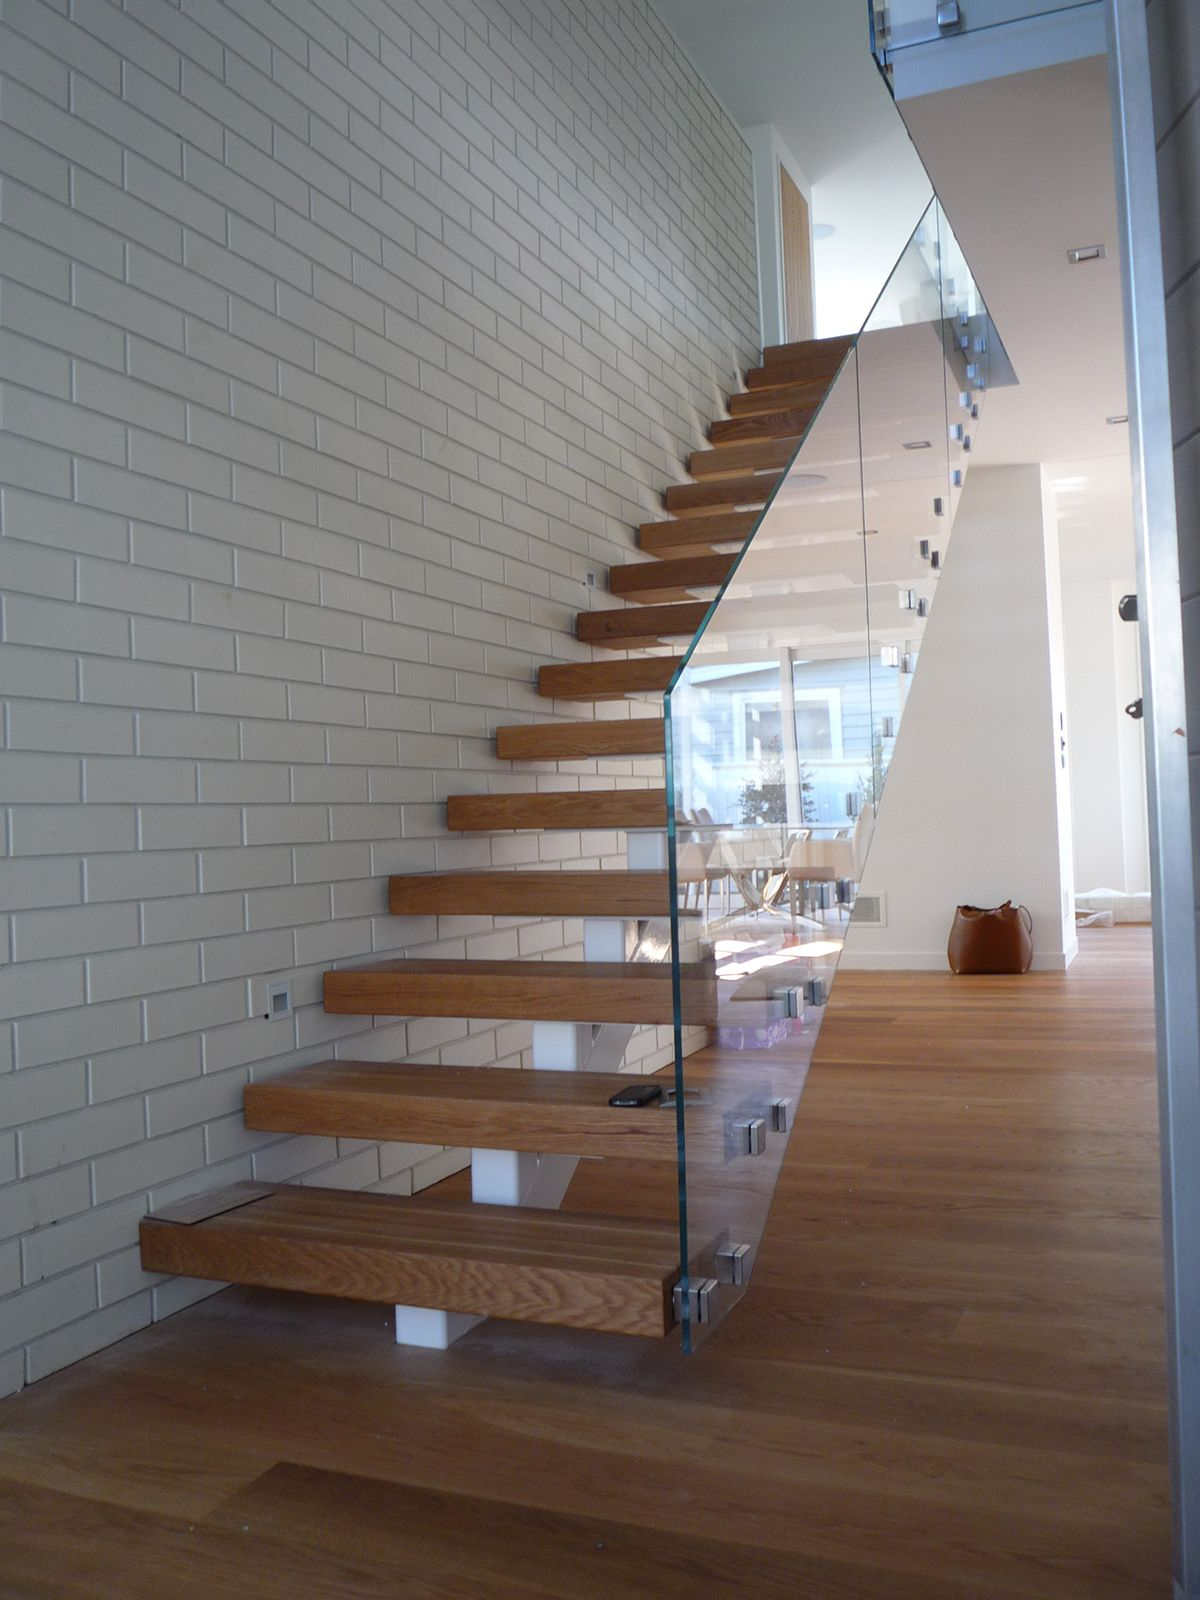 Pin On Floating Staircase Design Build | Floating Stairs With Glass Railing | Wall | Commercial | Glass Staircase | Thin Glass | Modern